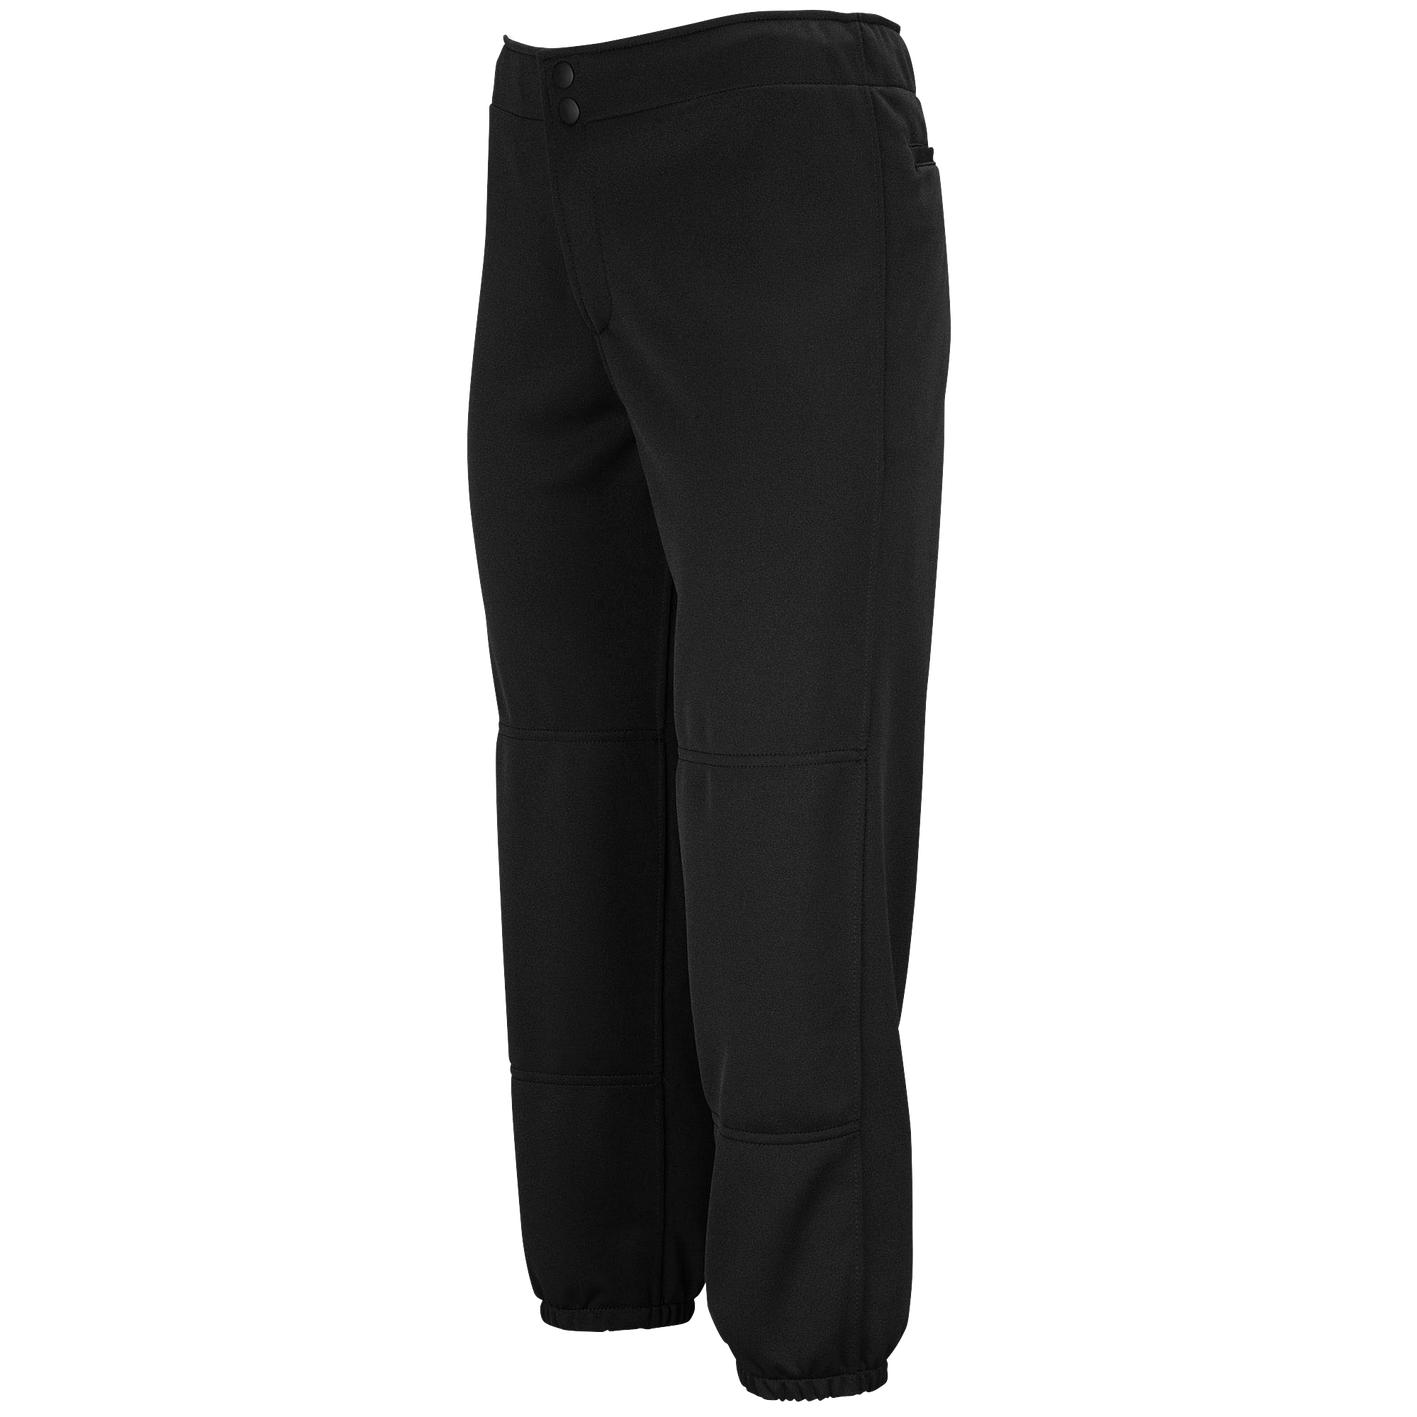 Mizuno Select Non-Belted Fastpitch Pants - Women s - Softball ... d3824eeb7